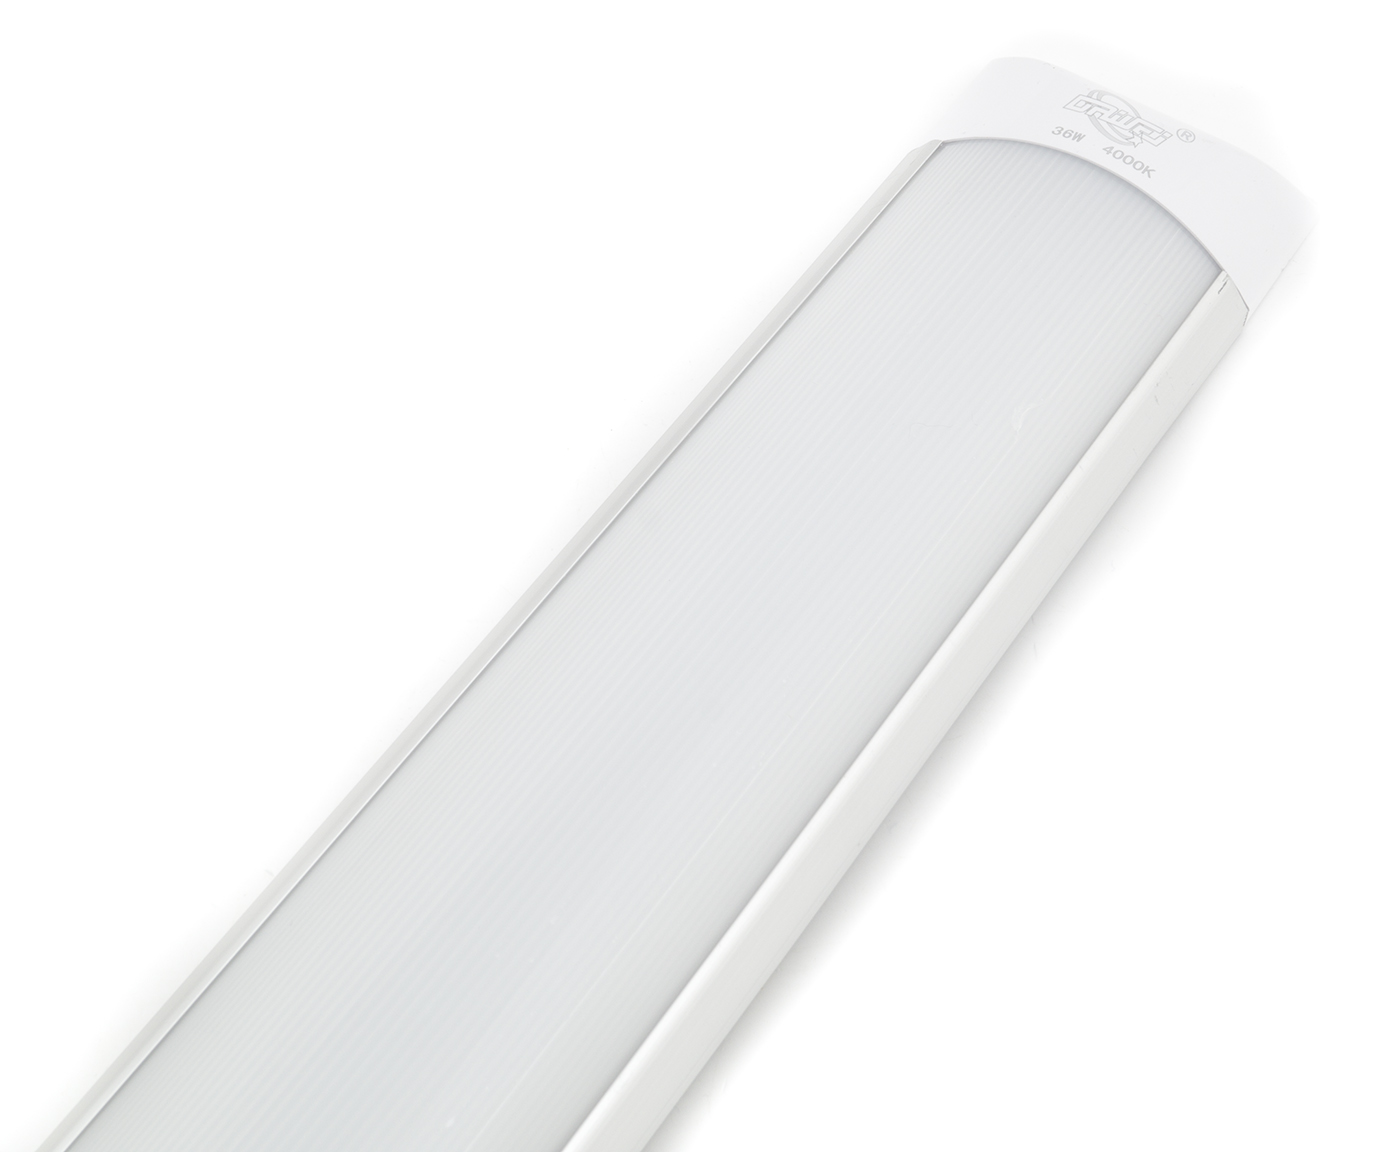 Led soffitto bagno ~ fatua.net for .